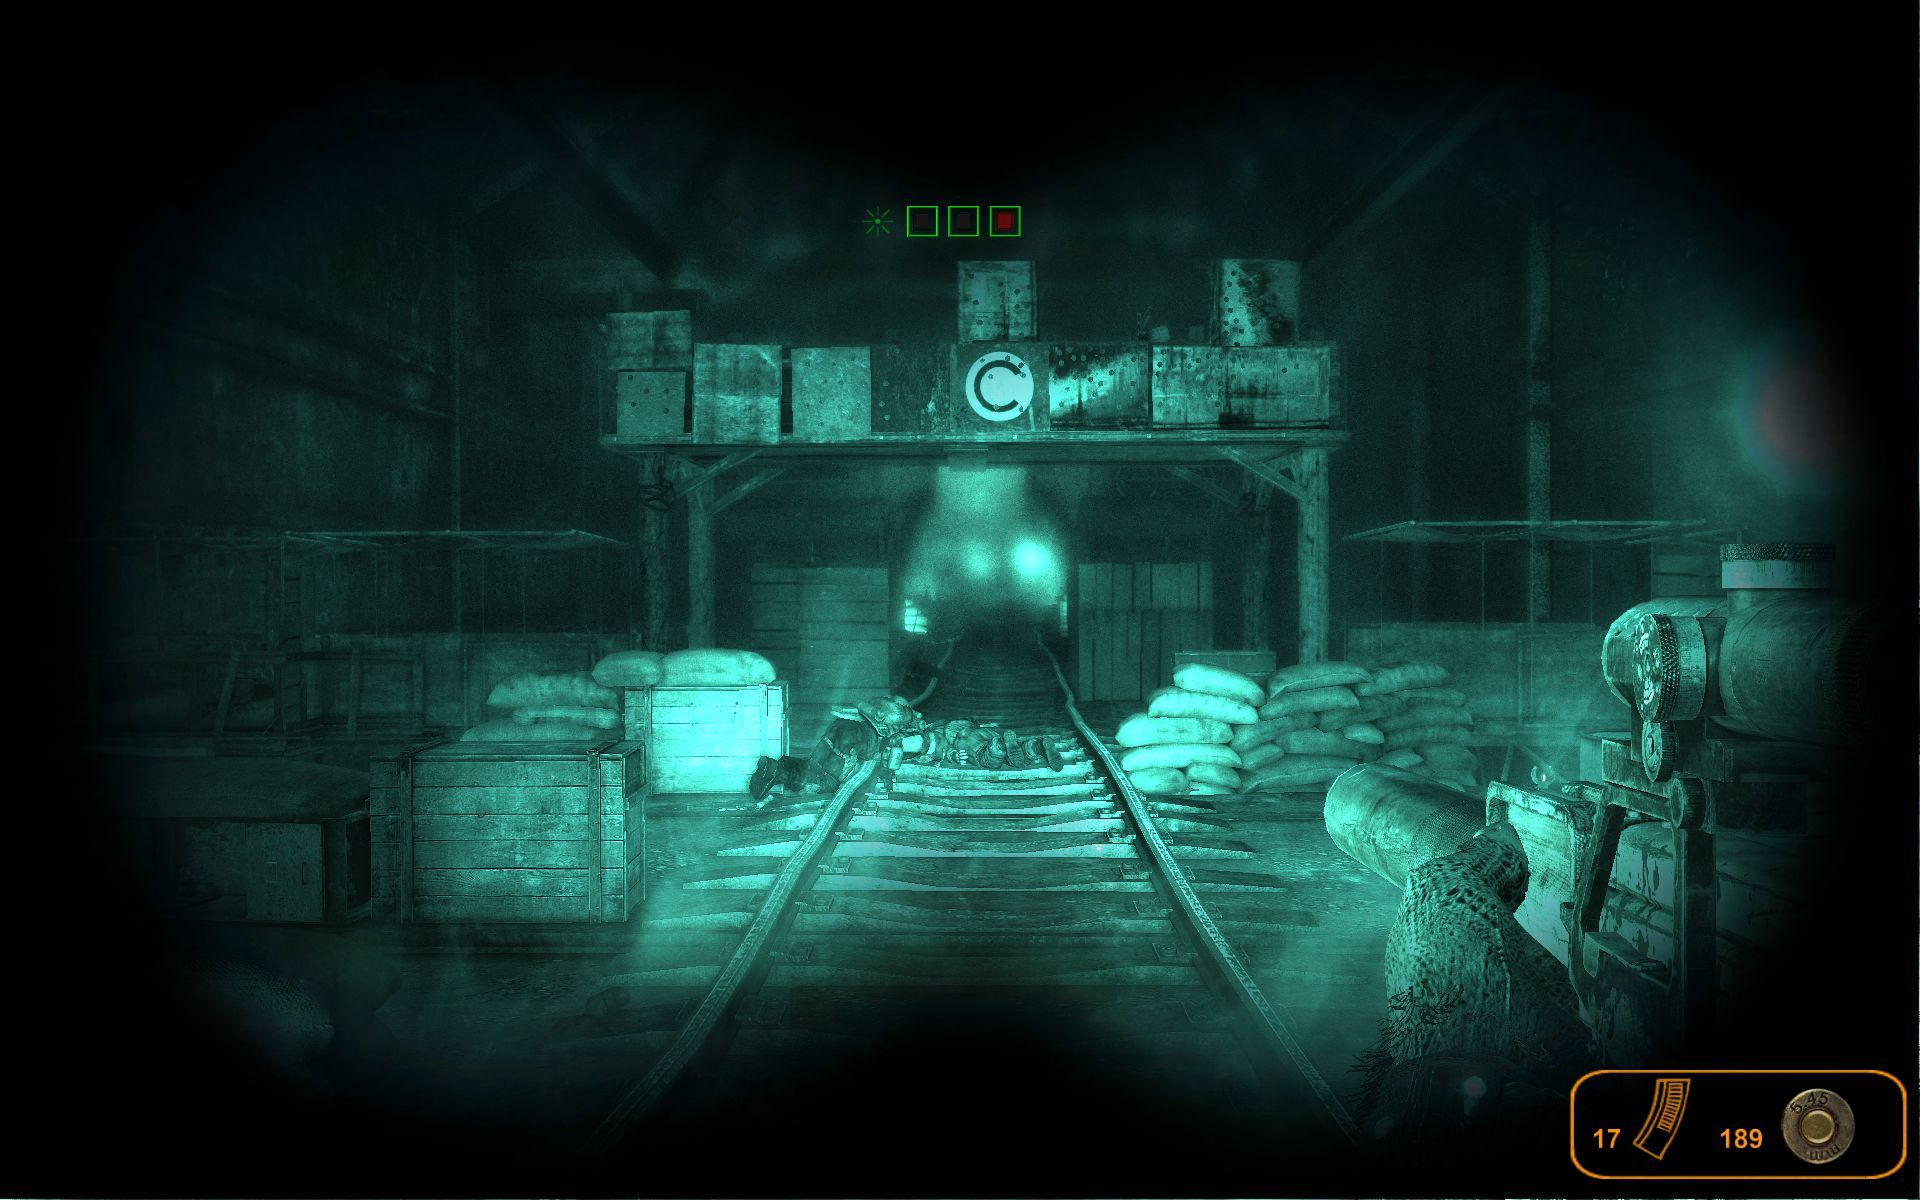 Metro 2033 Windows Nightvision goggles are useful in the very dark tunnels.